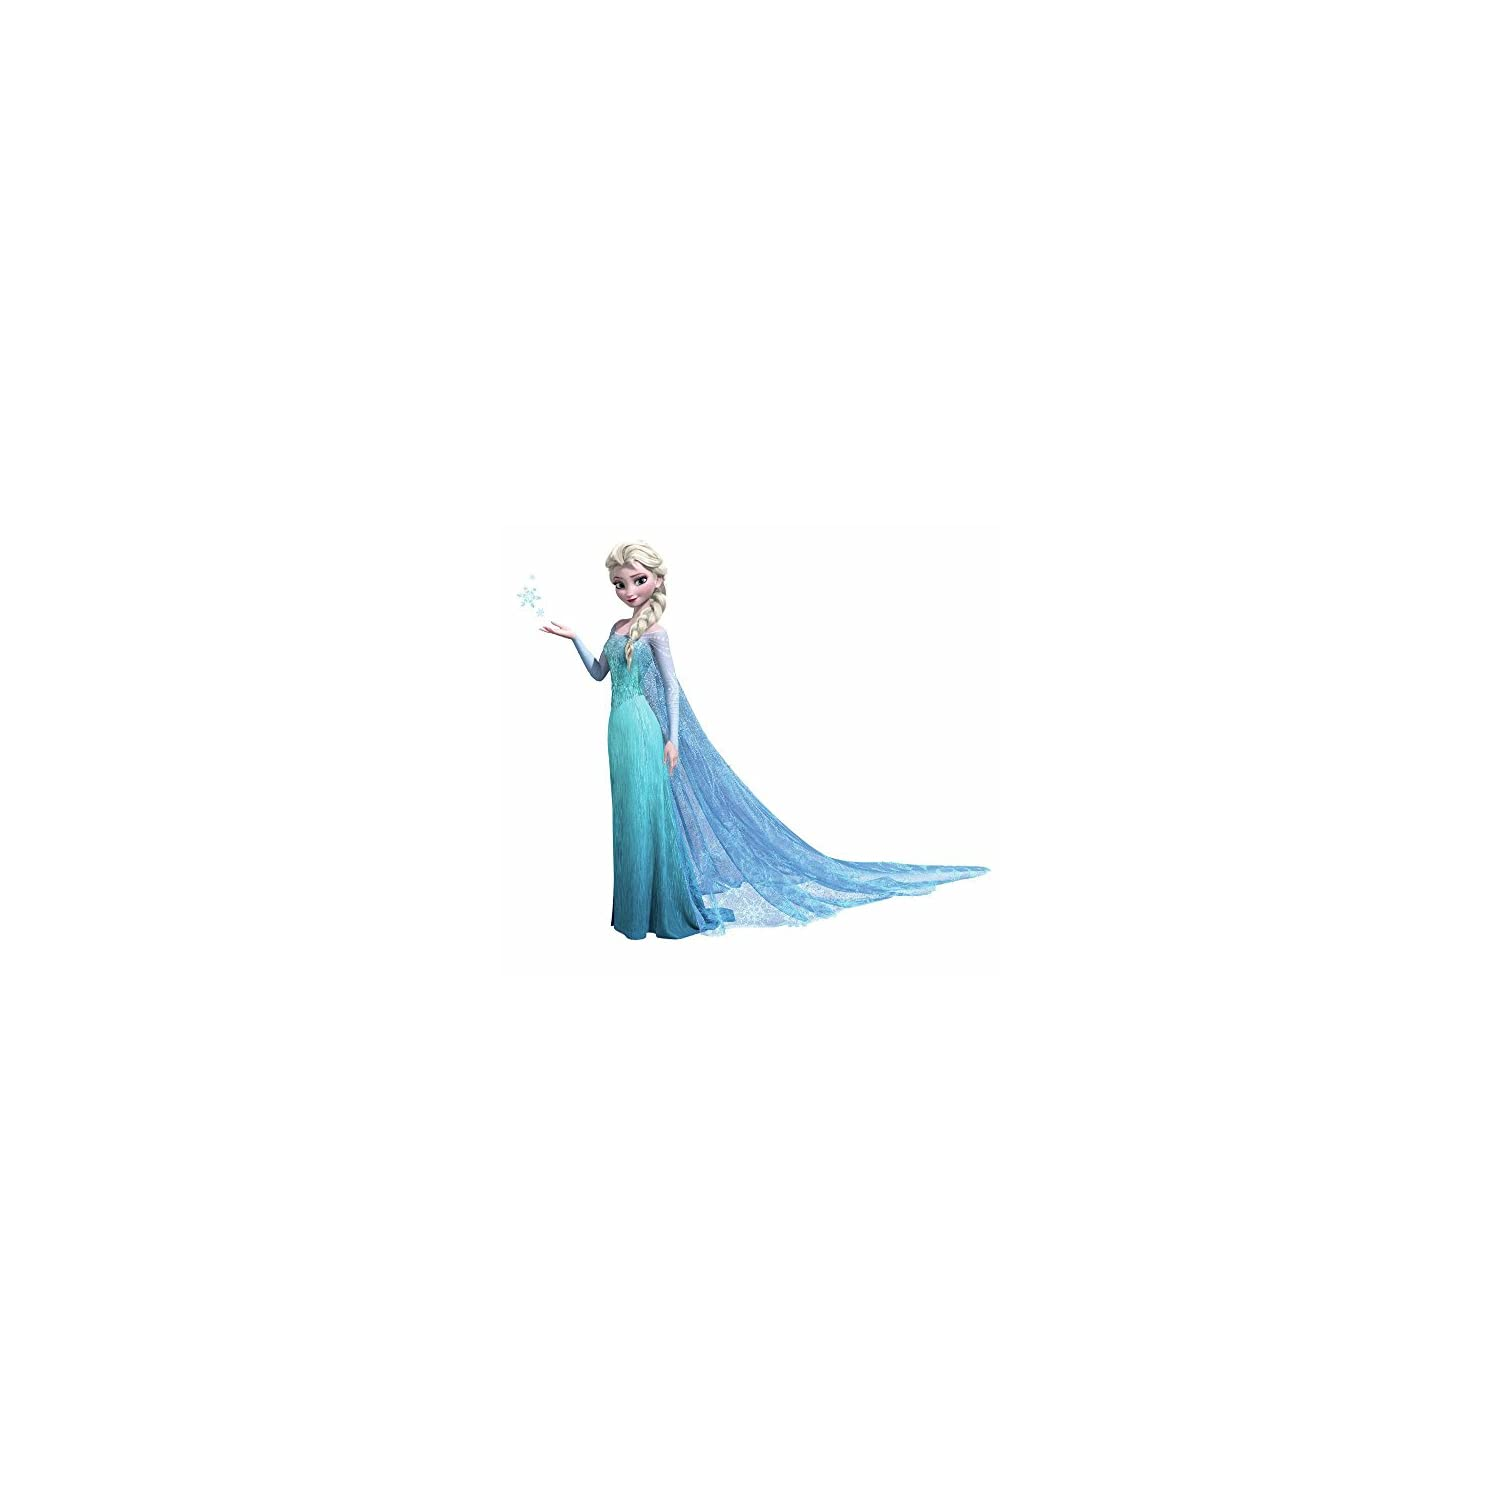 Roommates Rmk2371Gm Frozen Elsa Peel And Stick Giant Wall Decals, 1-Pack